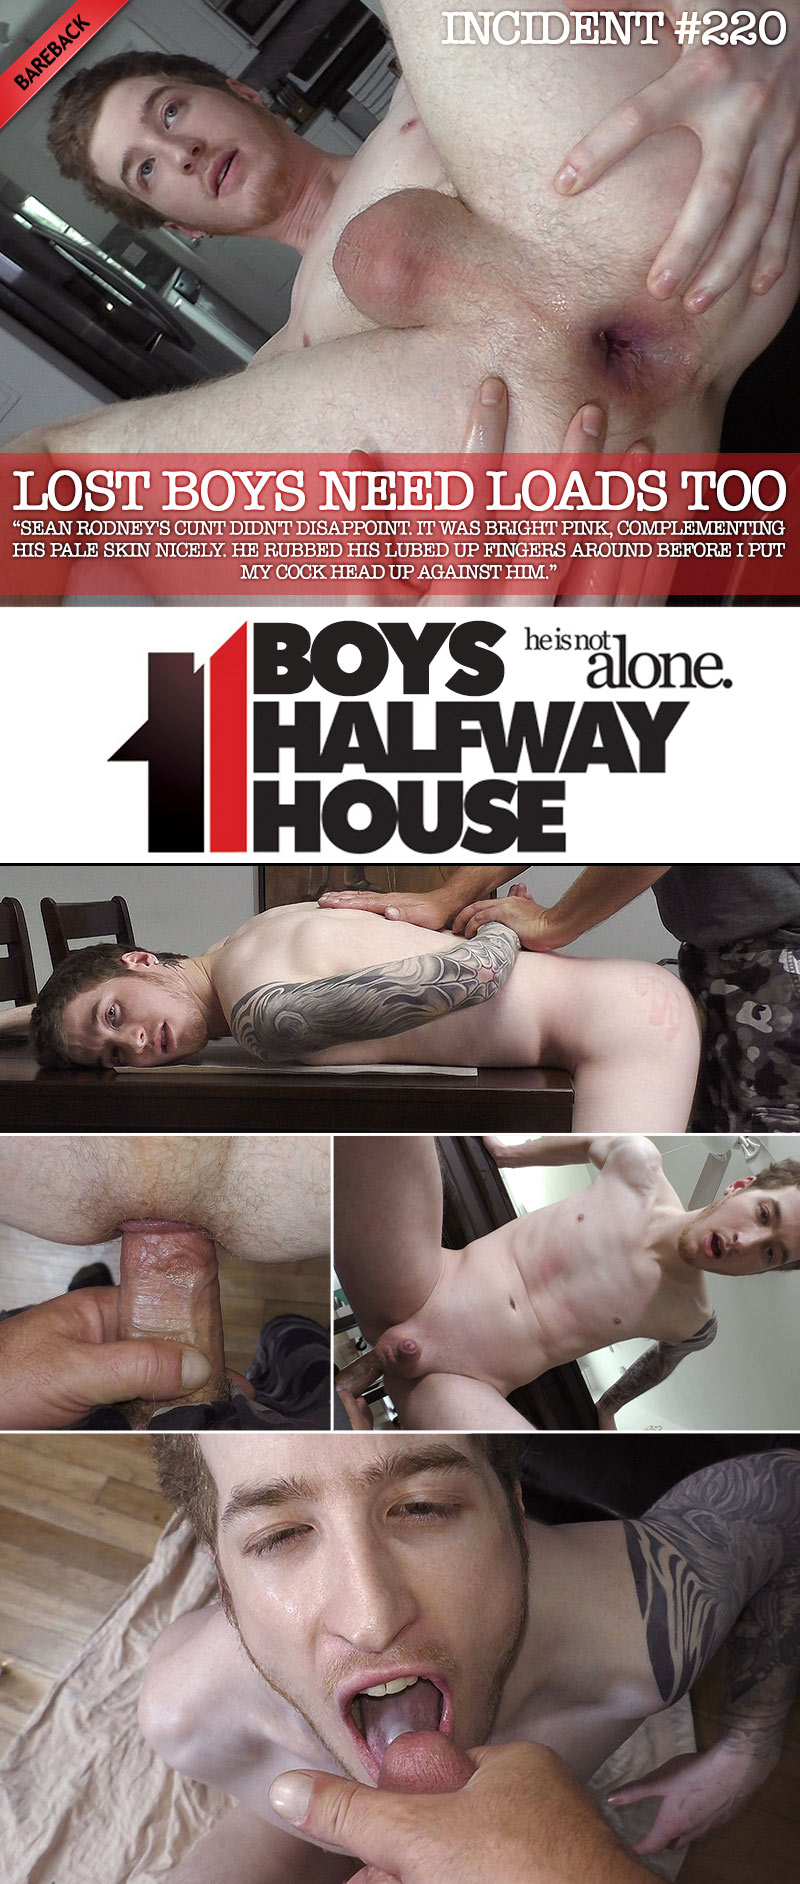 Incident #220: Lost Boys Need Loads Too (with Sean Rodney) at Boys Halfway House